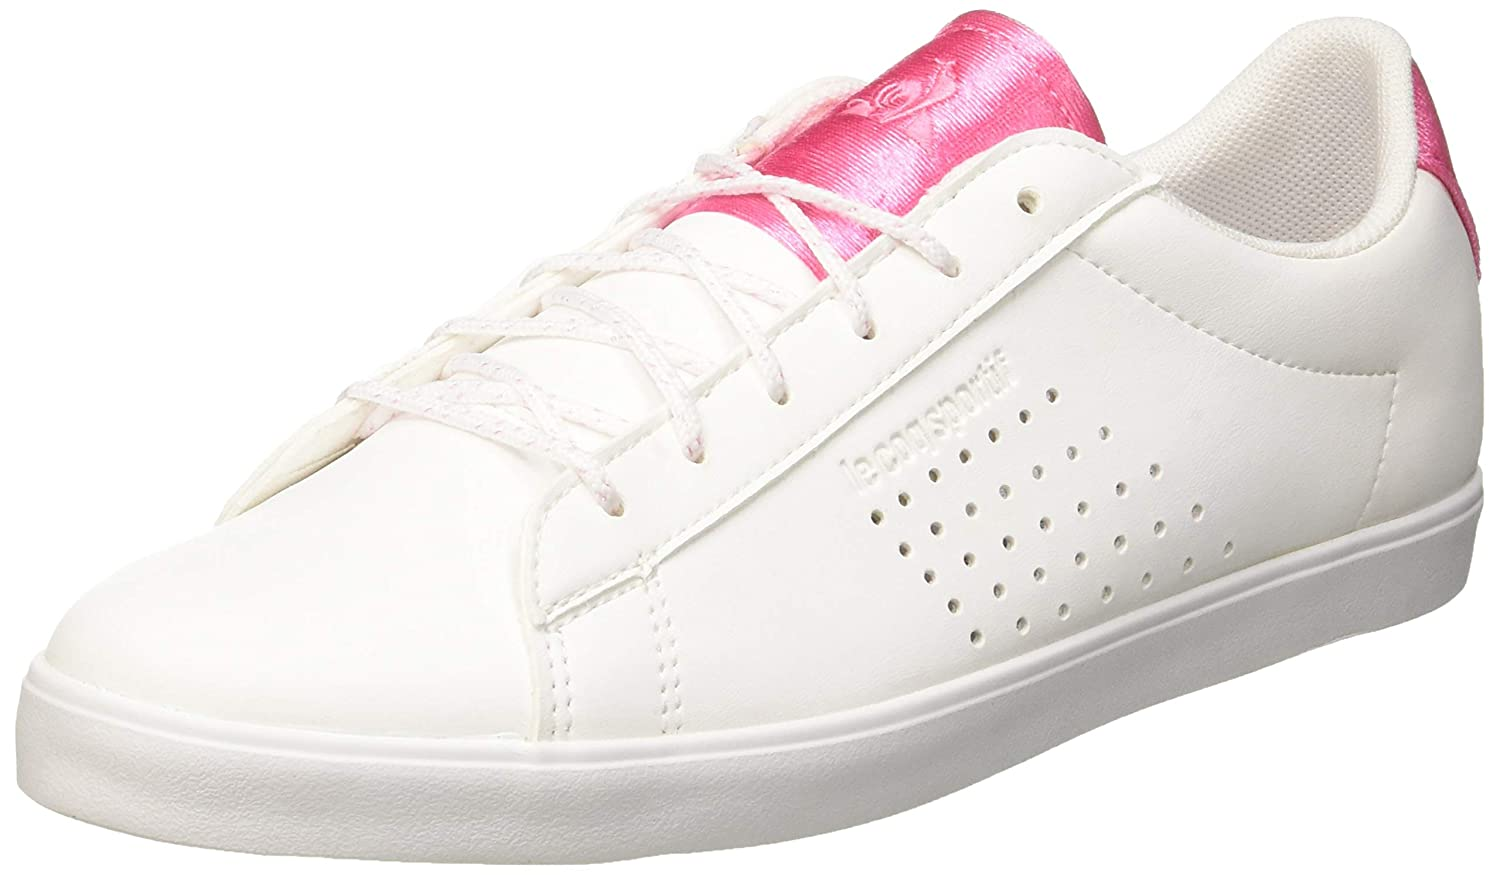 Le Coq Sportif Damen Agate Optical Weiß Rosa Carnation Turnschuhe